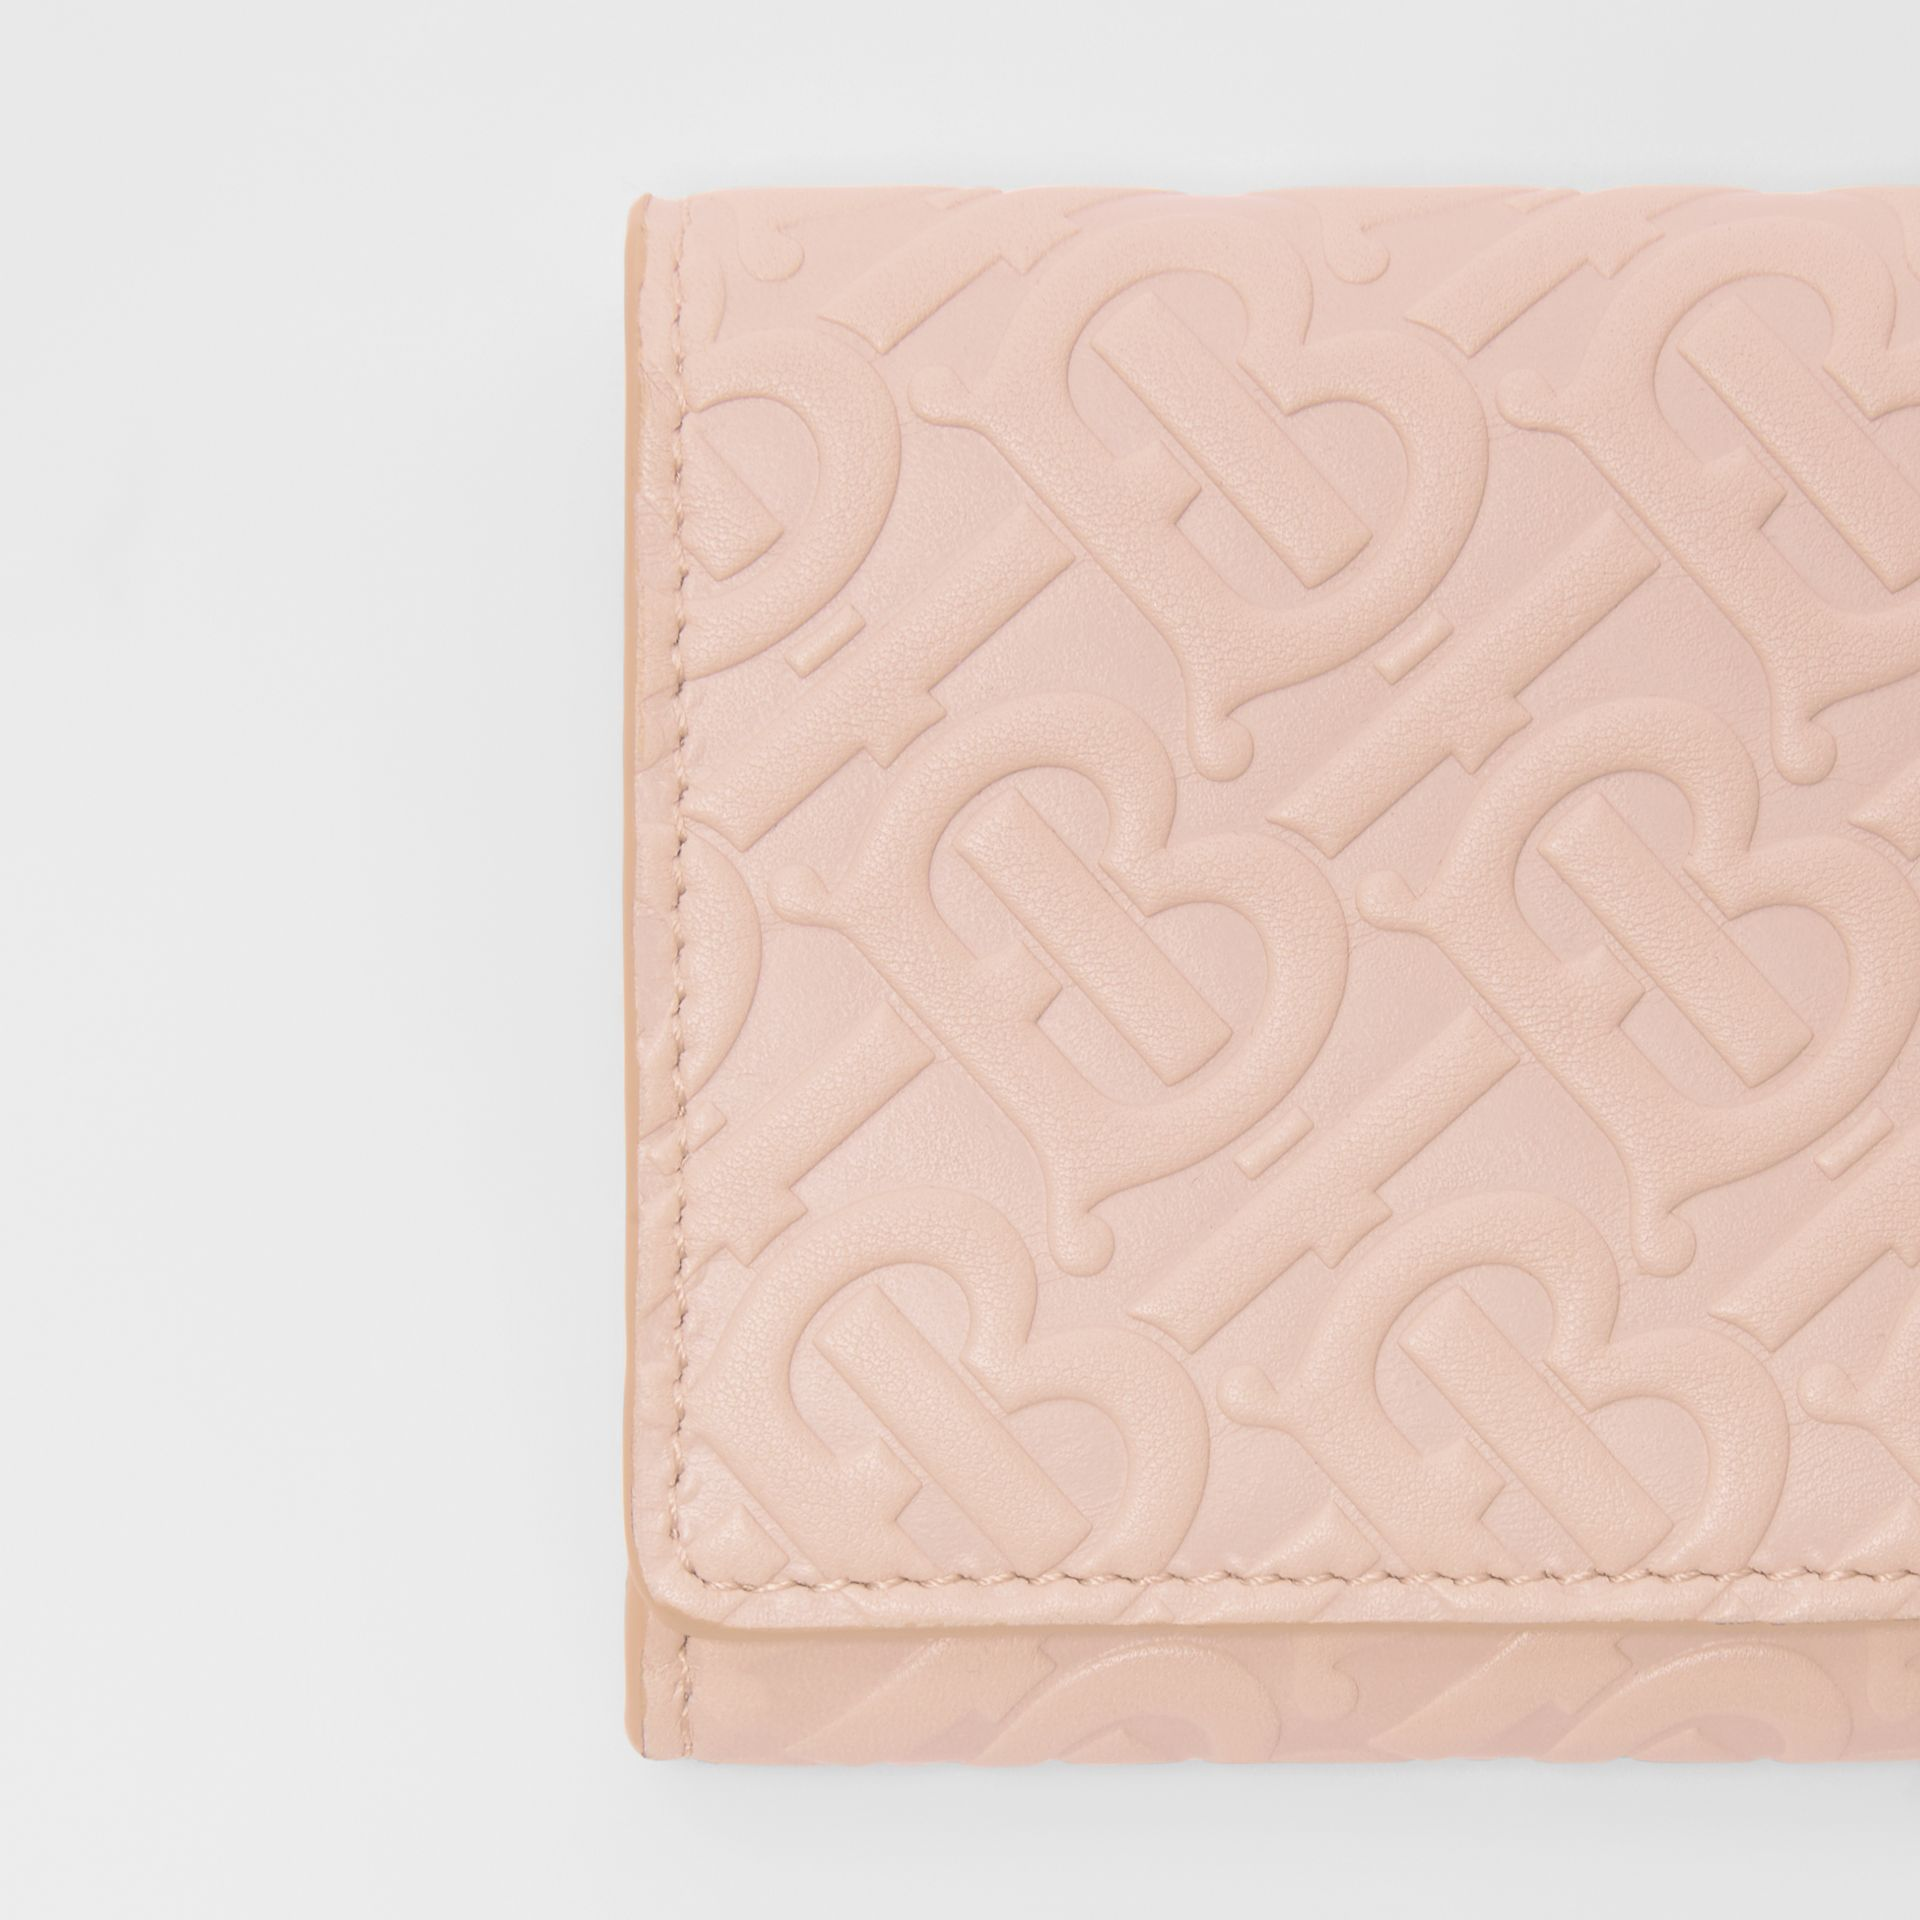 Monogram Leather Continental Wallet in Rose Beige - Women | Burberry - gallery image 1